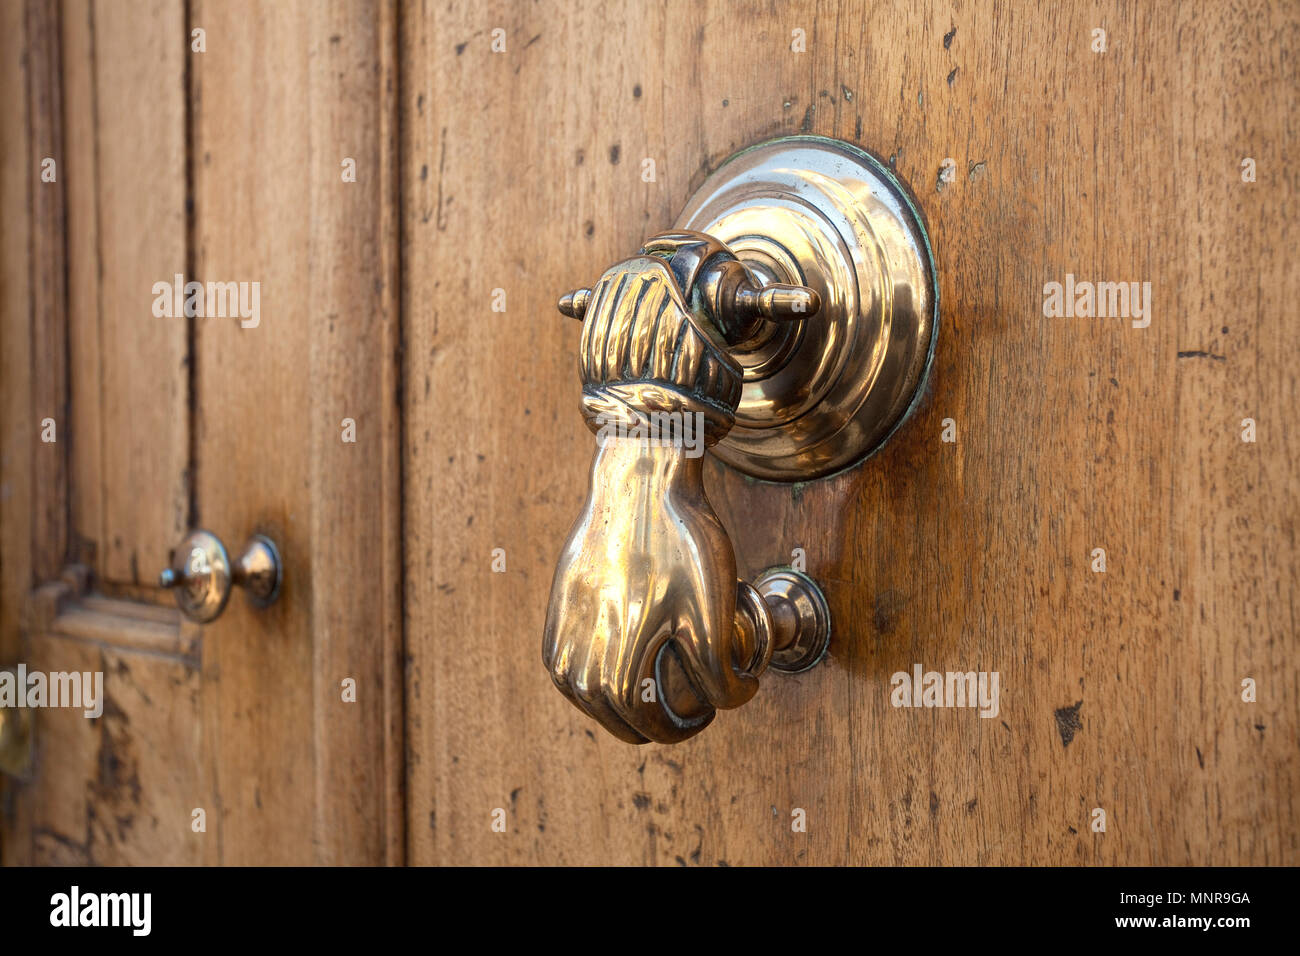 Nostalgic doorknocker at old town of Cassis, Bouches-du-Rhone, Provence-Alpes-Côte d'Azur, South France, France, Europe - Stock Image